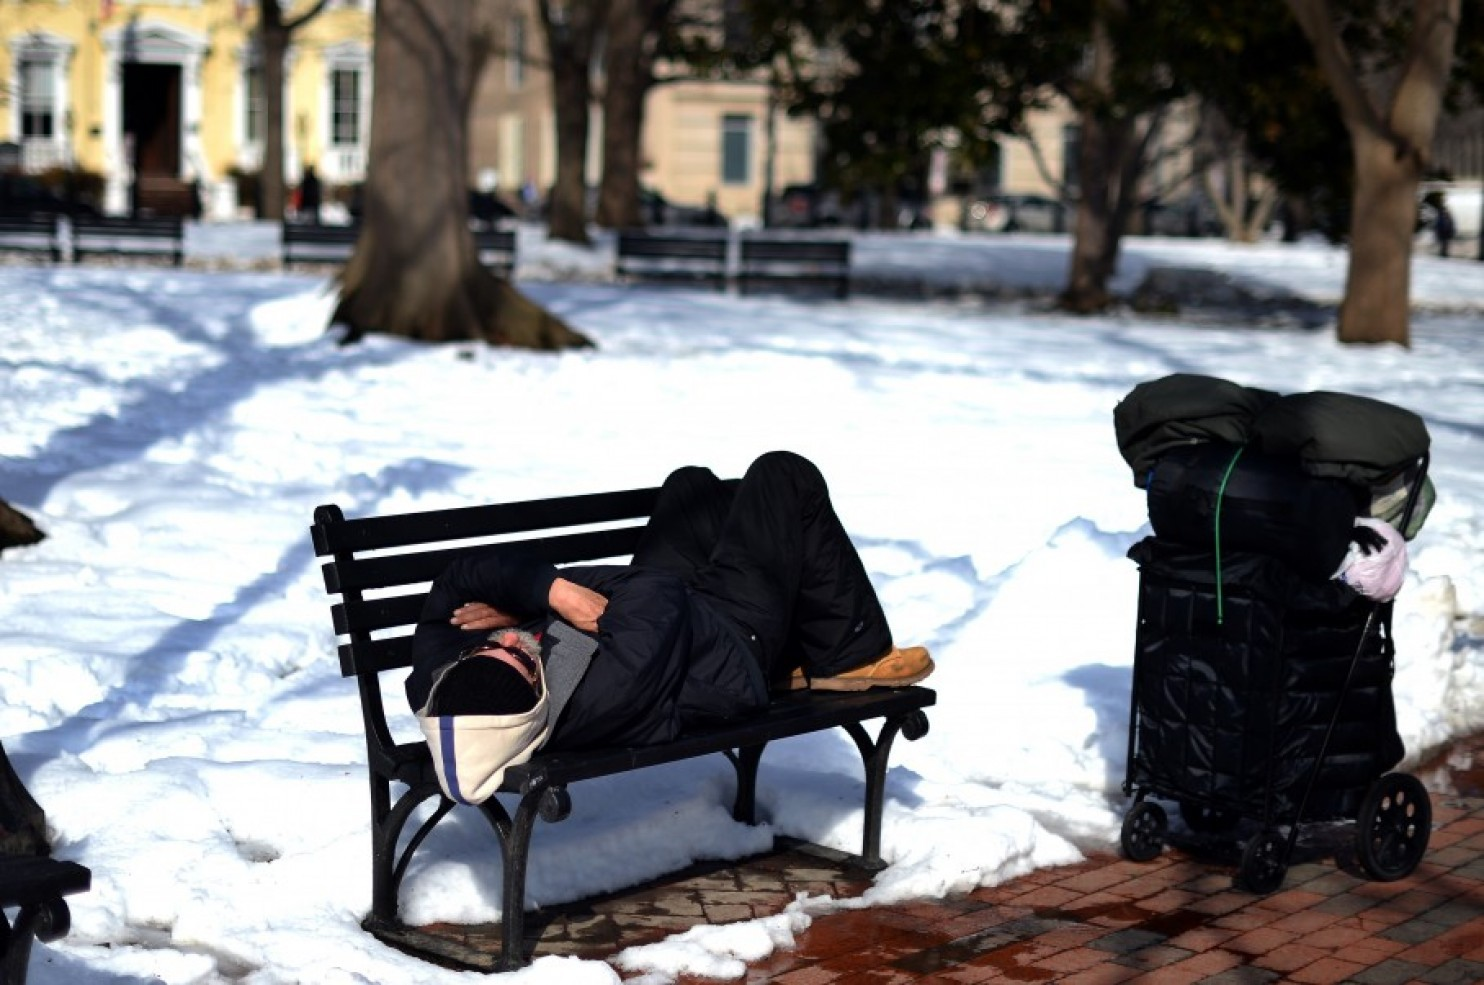 was8305989-jpg.24567_It's unconstitutional to ban the homeless from sleeping outside, the federal government says_General Banter_Squat the Planet_6:05 AM